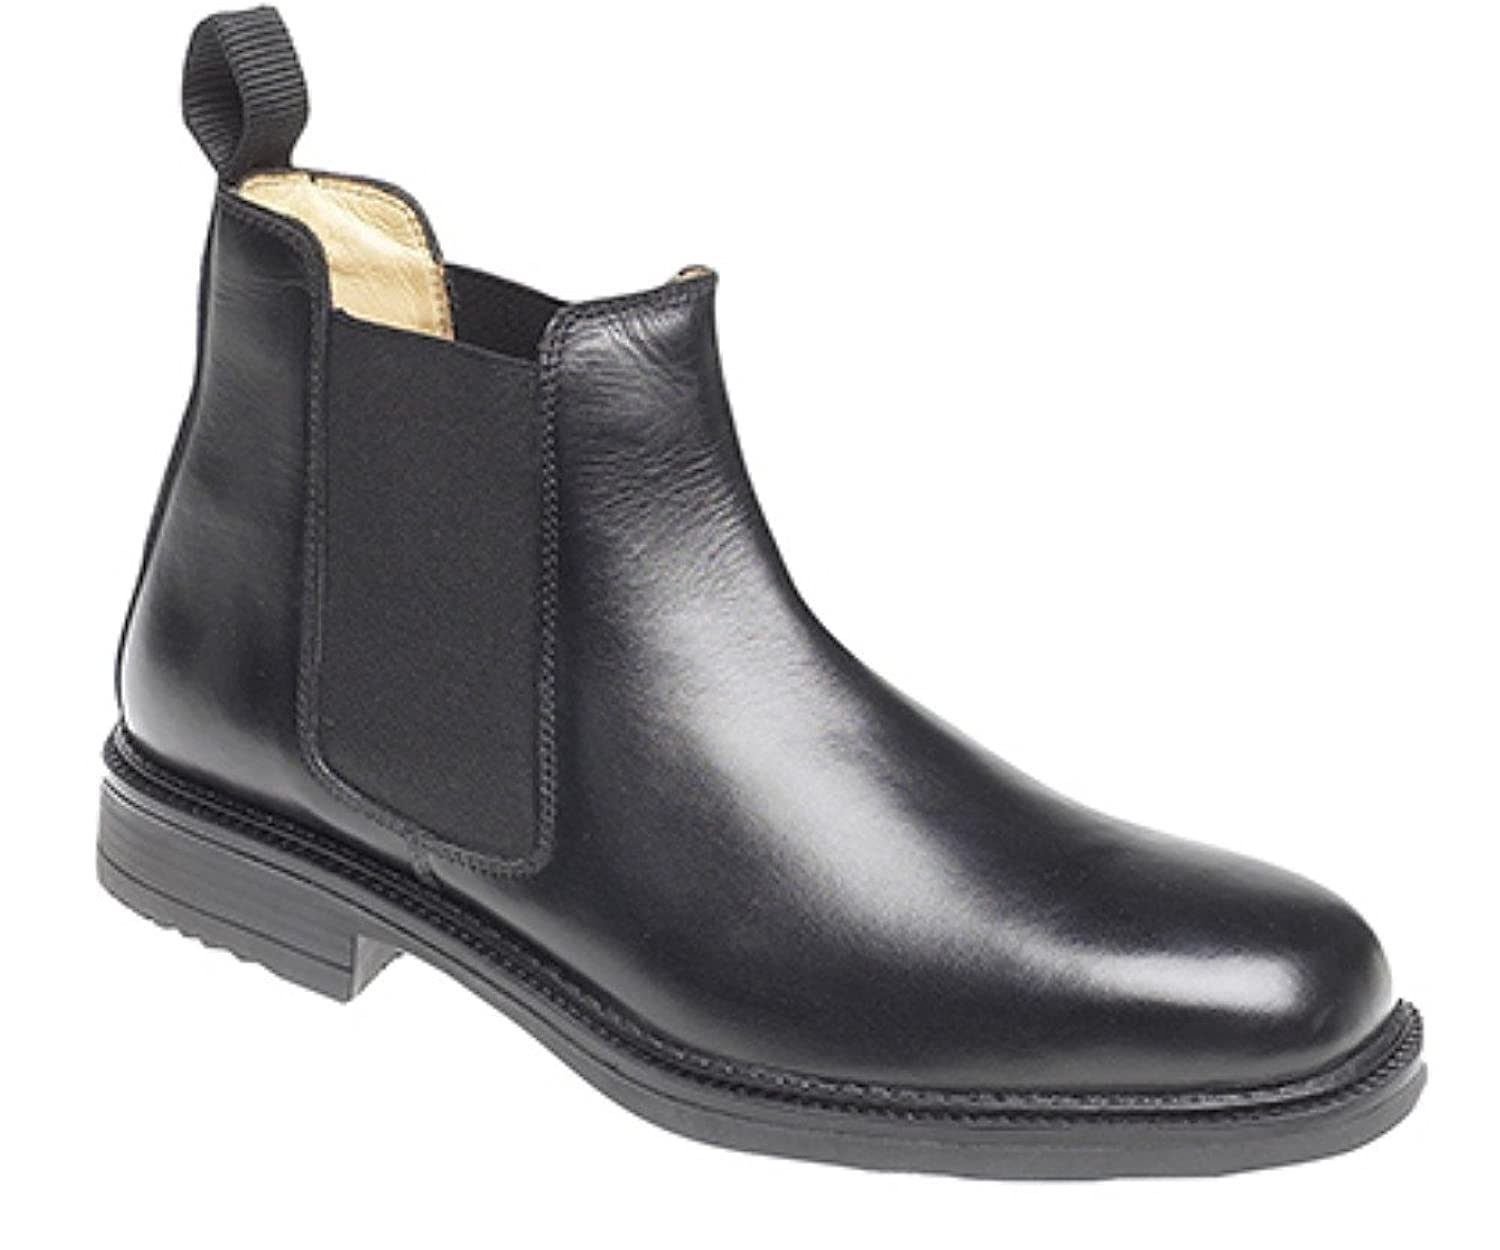 Chelsea Boots Men's Real Leather Boots with Leather Soles. In ...